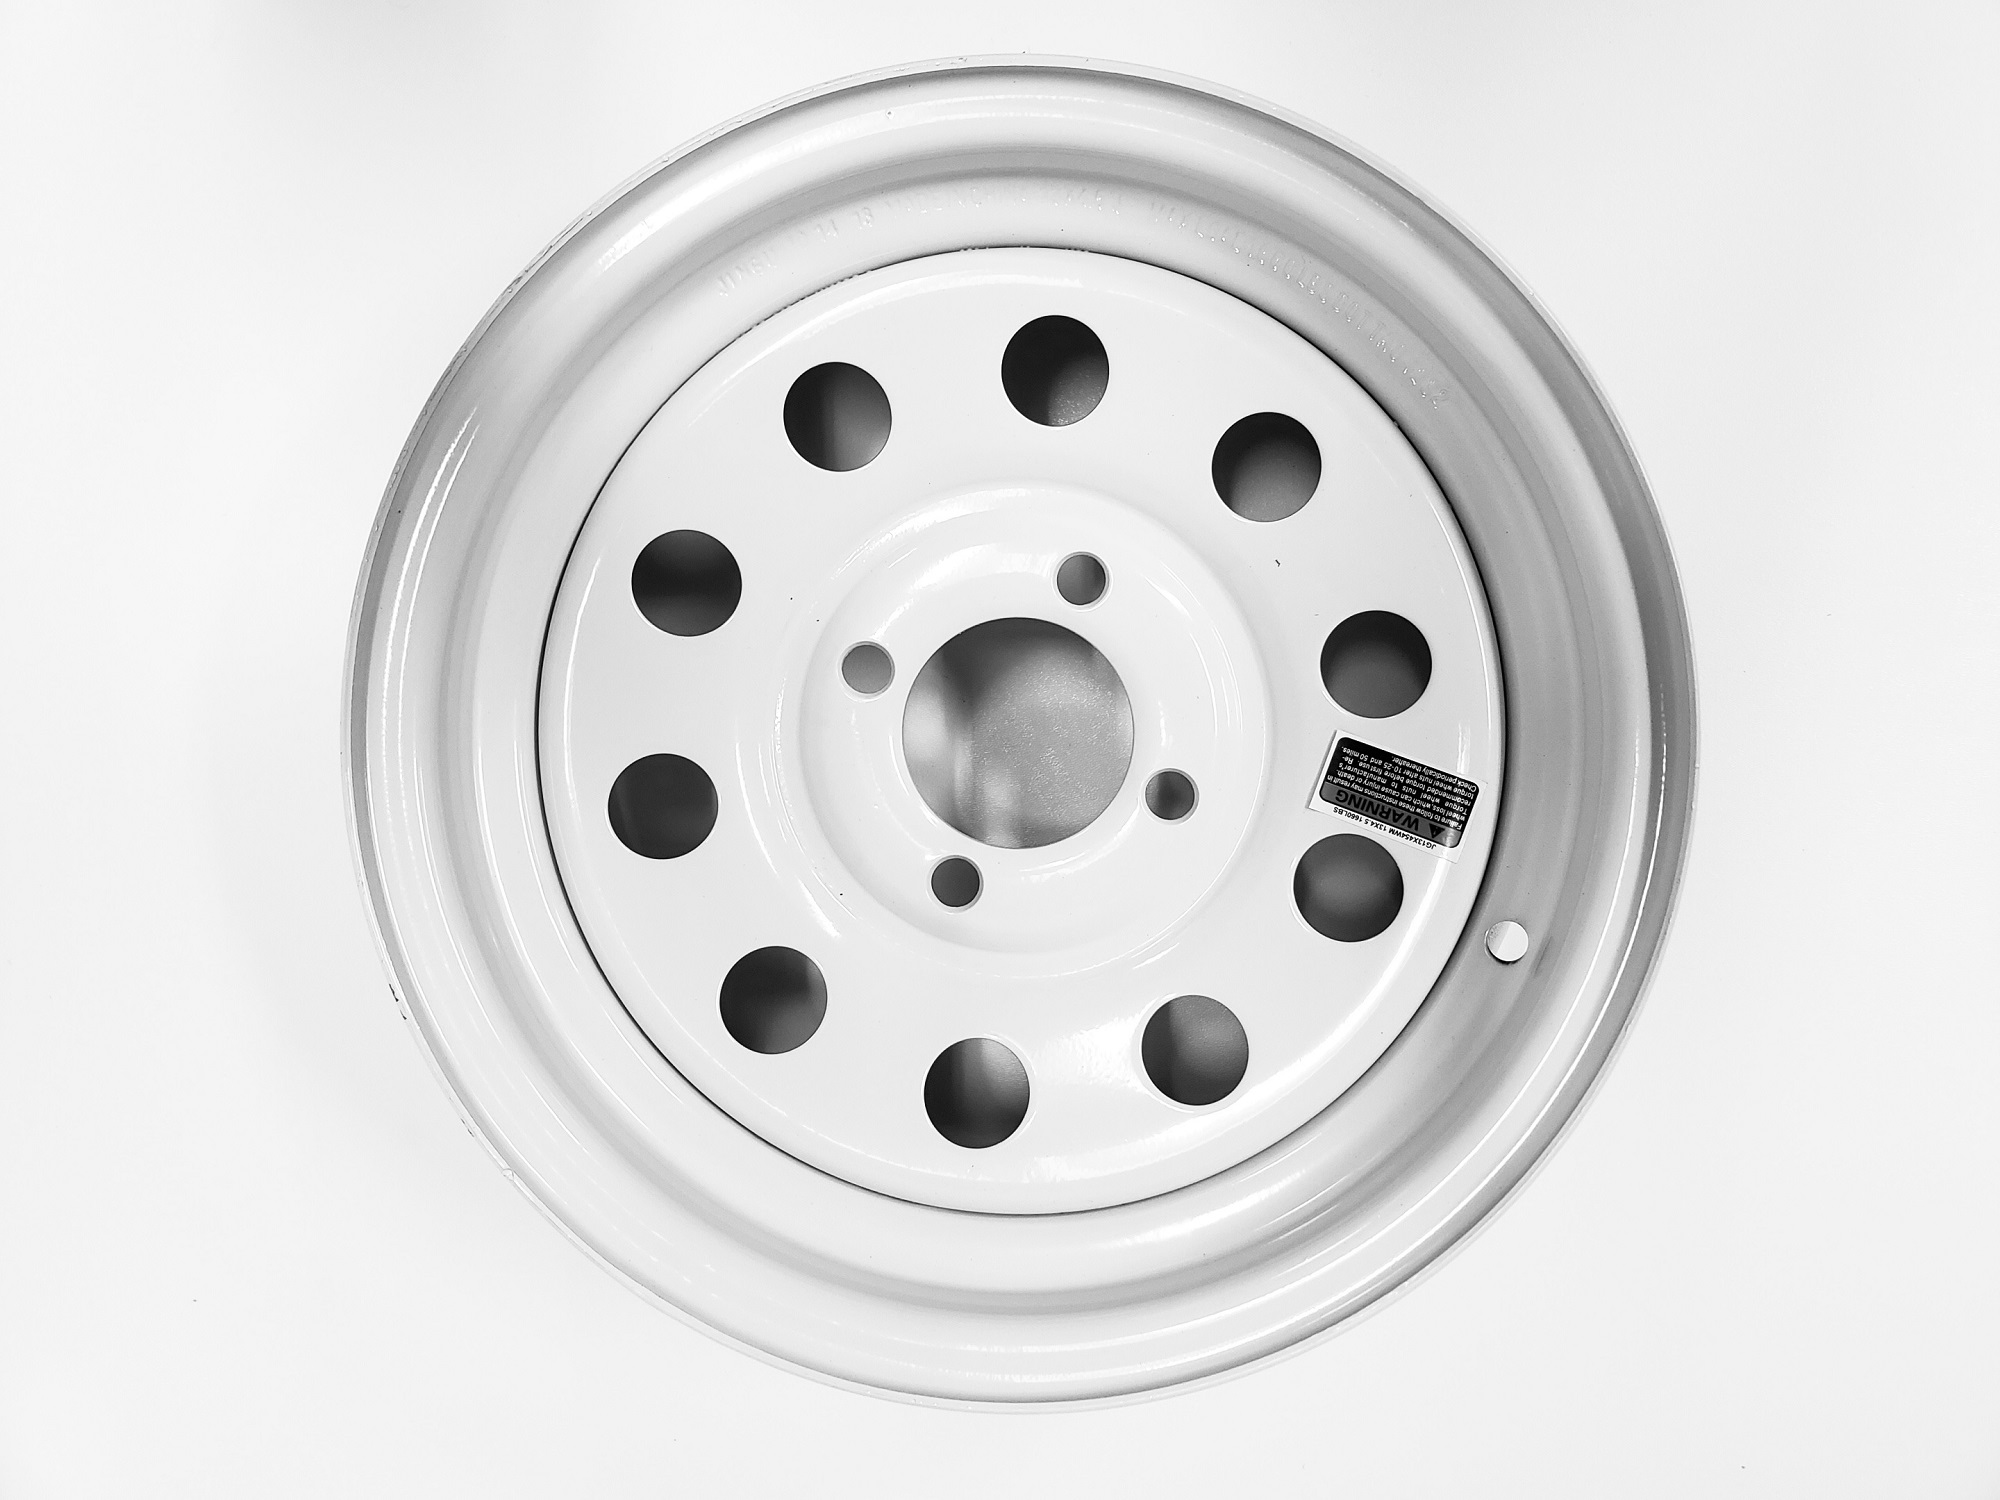 13X4.5 5 Lug Hole Bolt White Spoke Design Two Trailer Rims Wheels 13 in